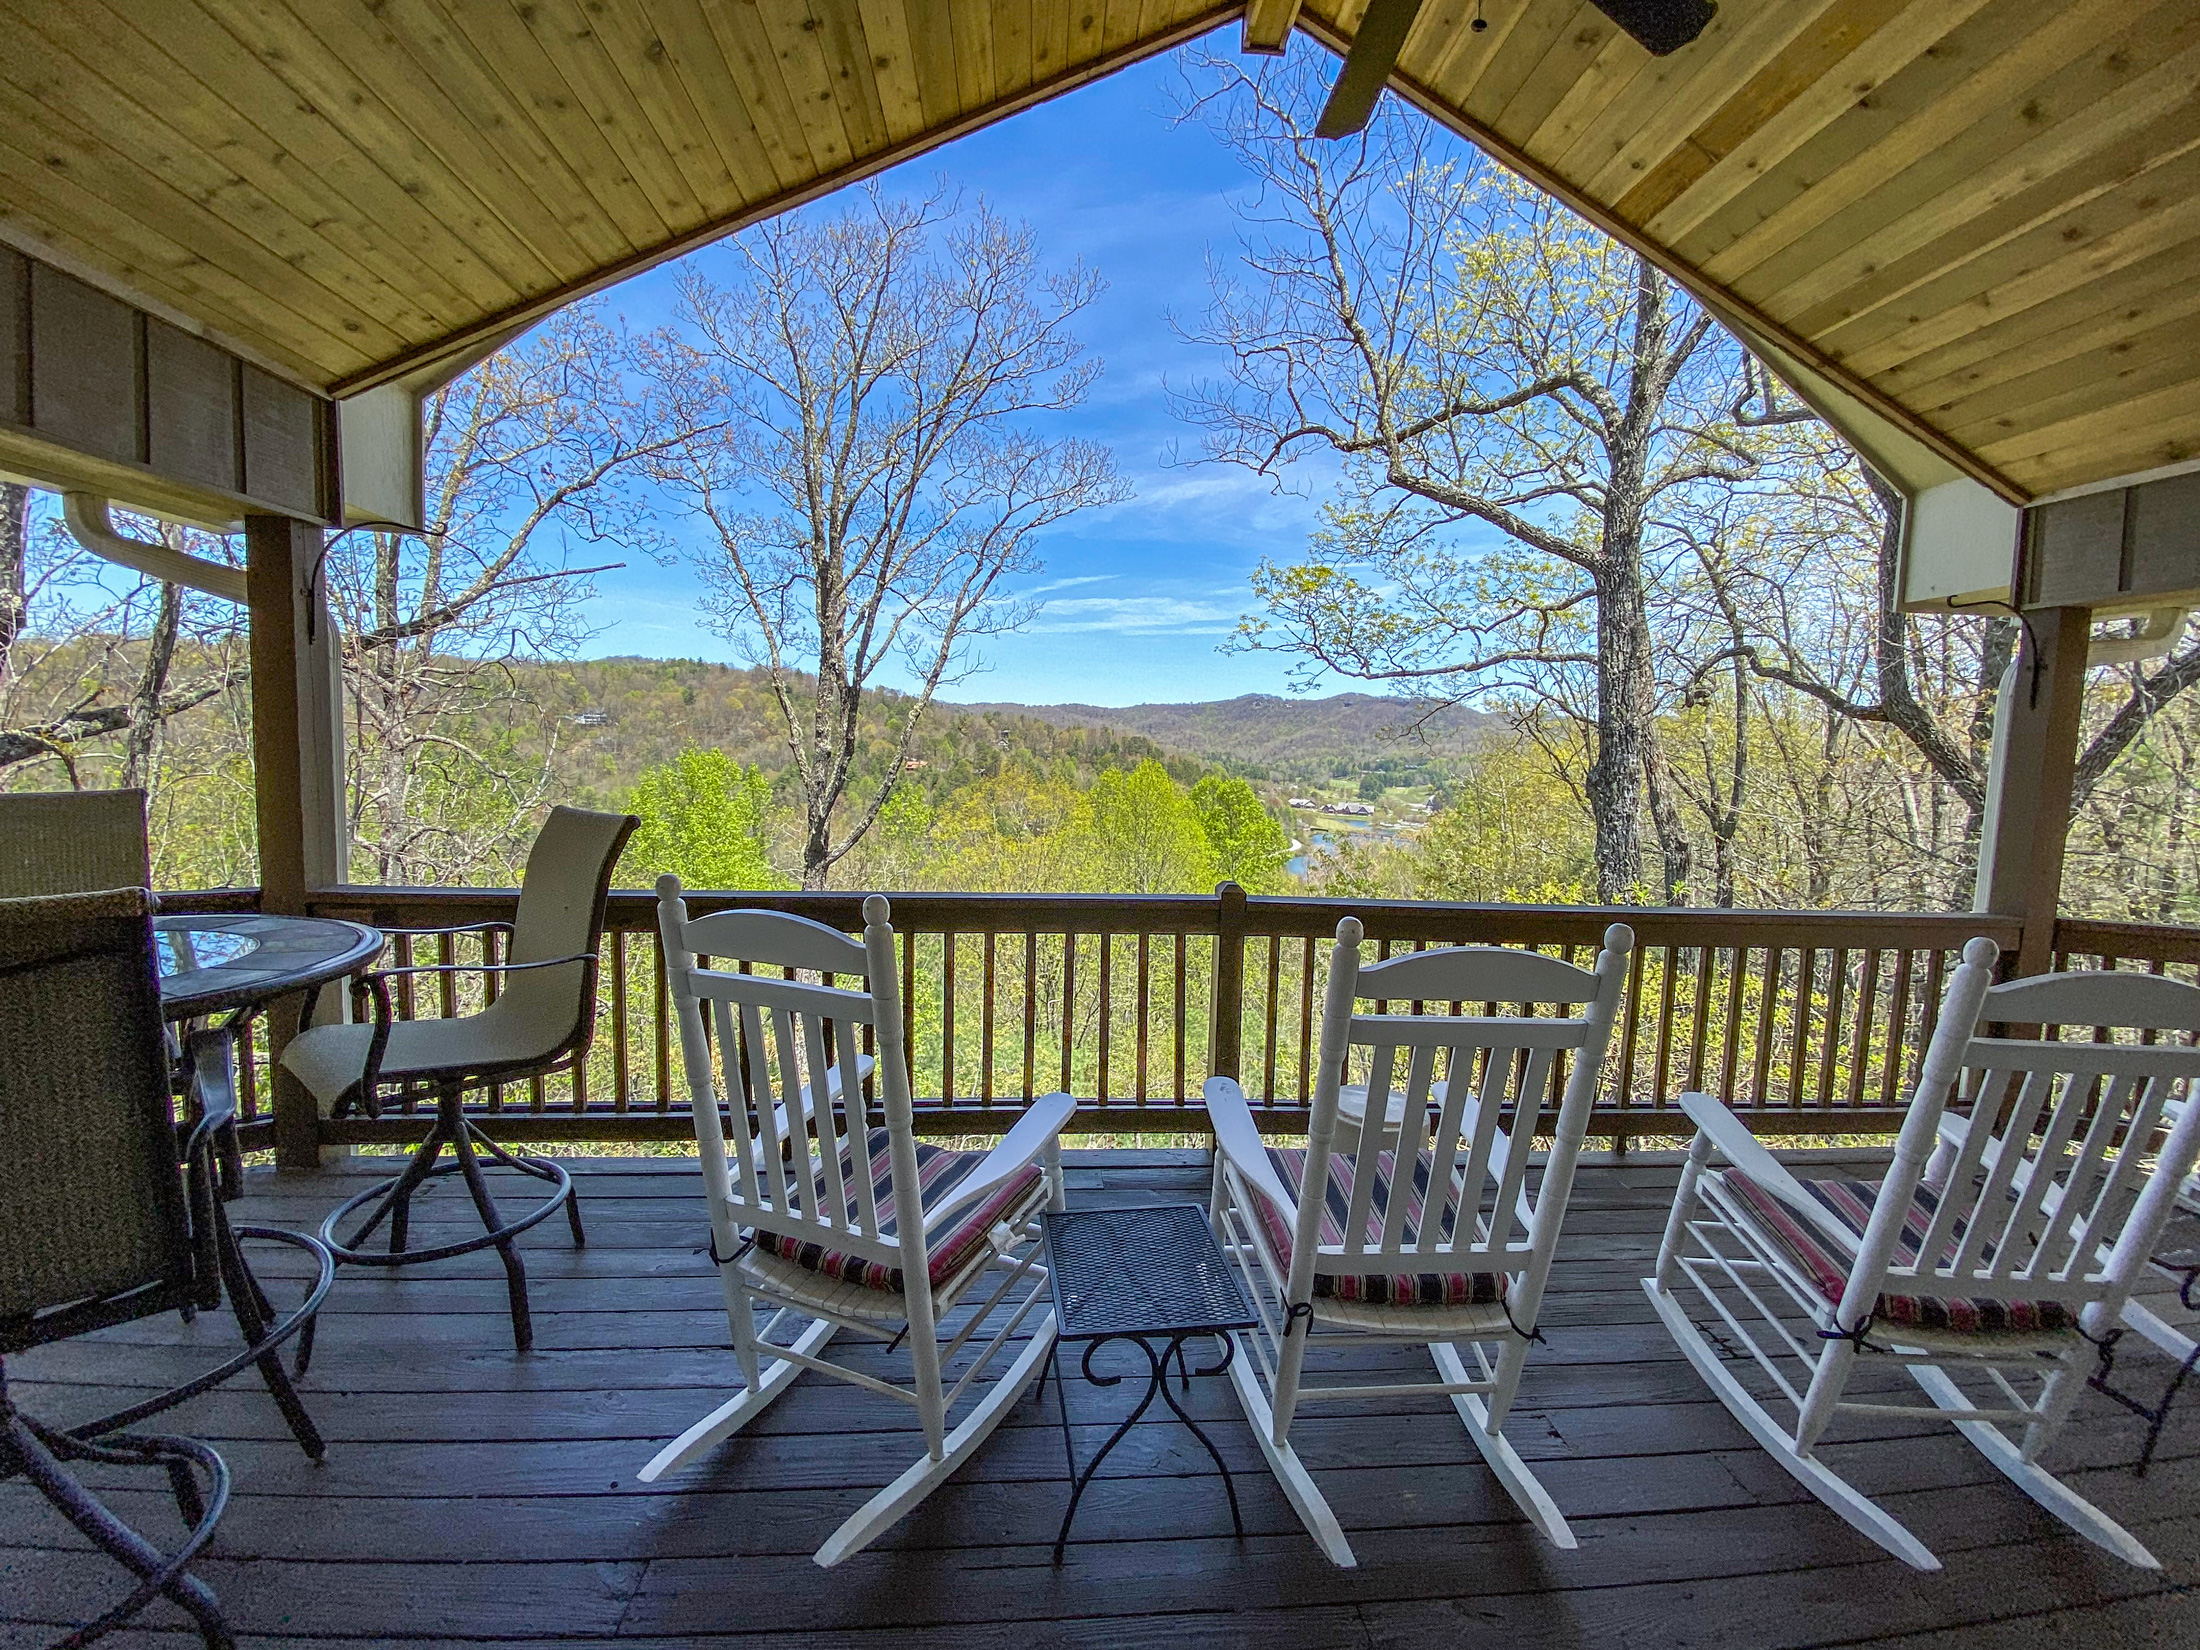 81 McClure Ln Sky Valley GA 30537 | MLS #8969983